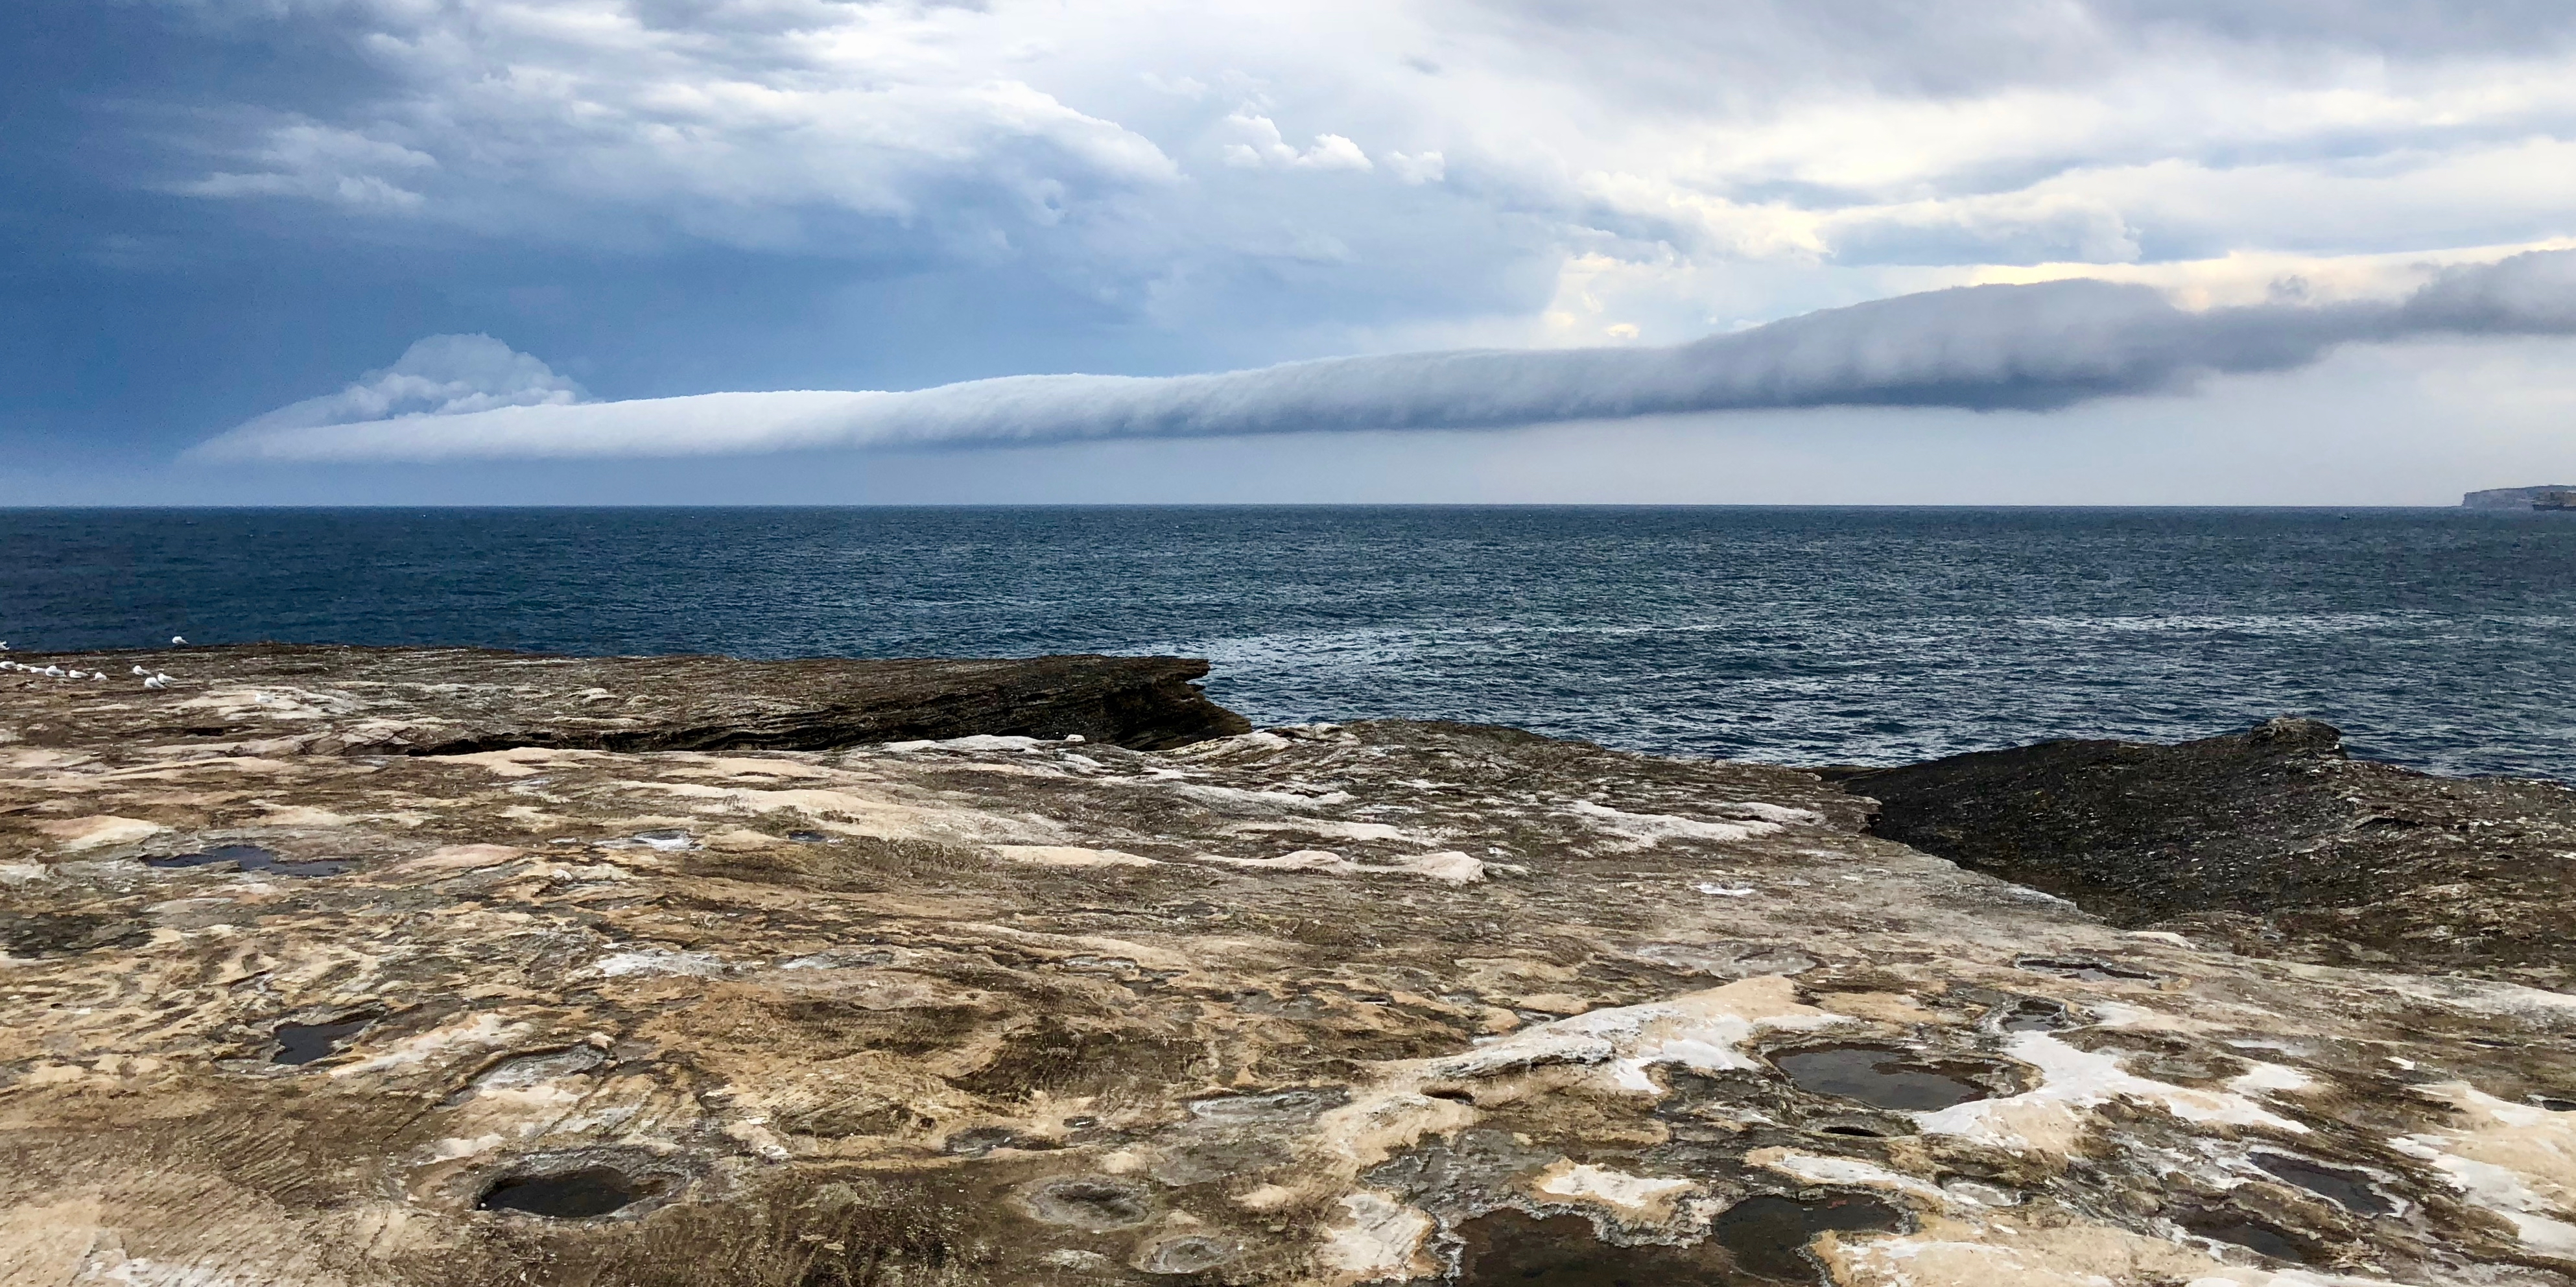 Storm rolling over Coogee, Bay, Beach, Coast, Landscape, HQ Photo